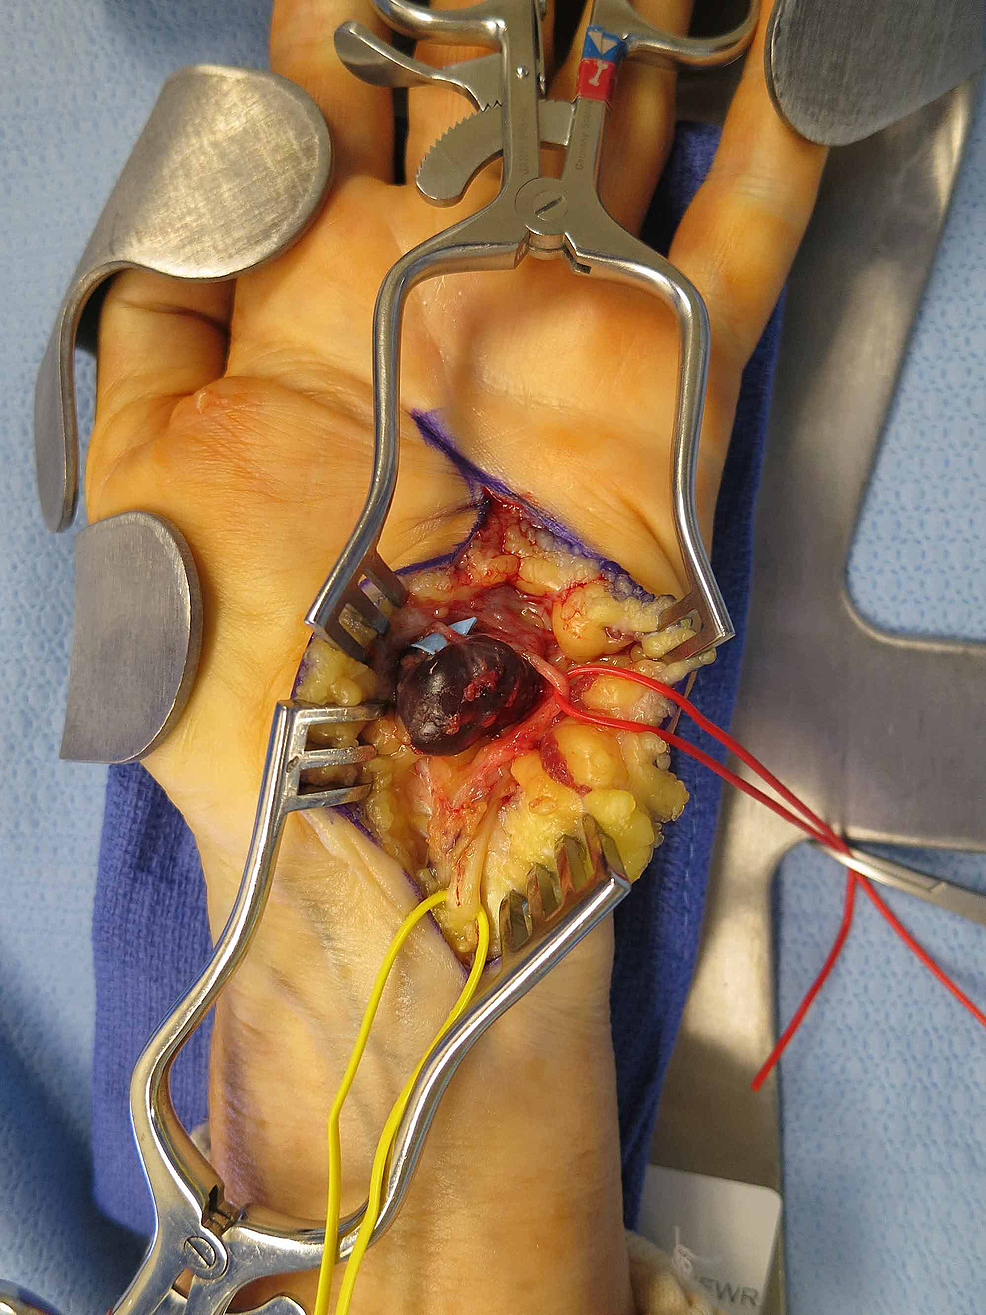 Intra-operative-view